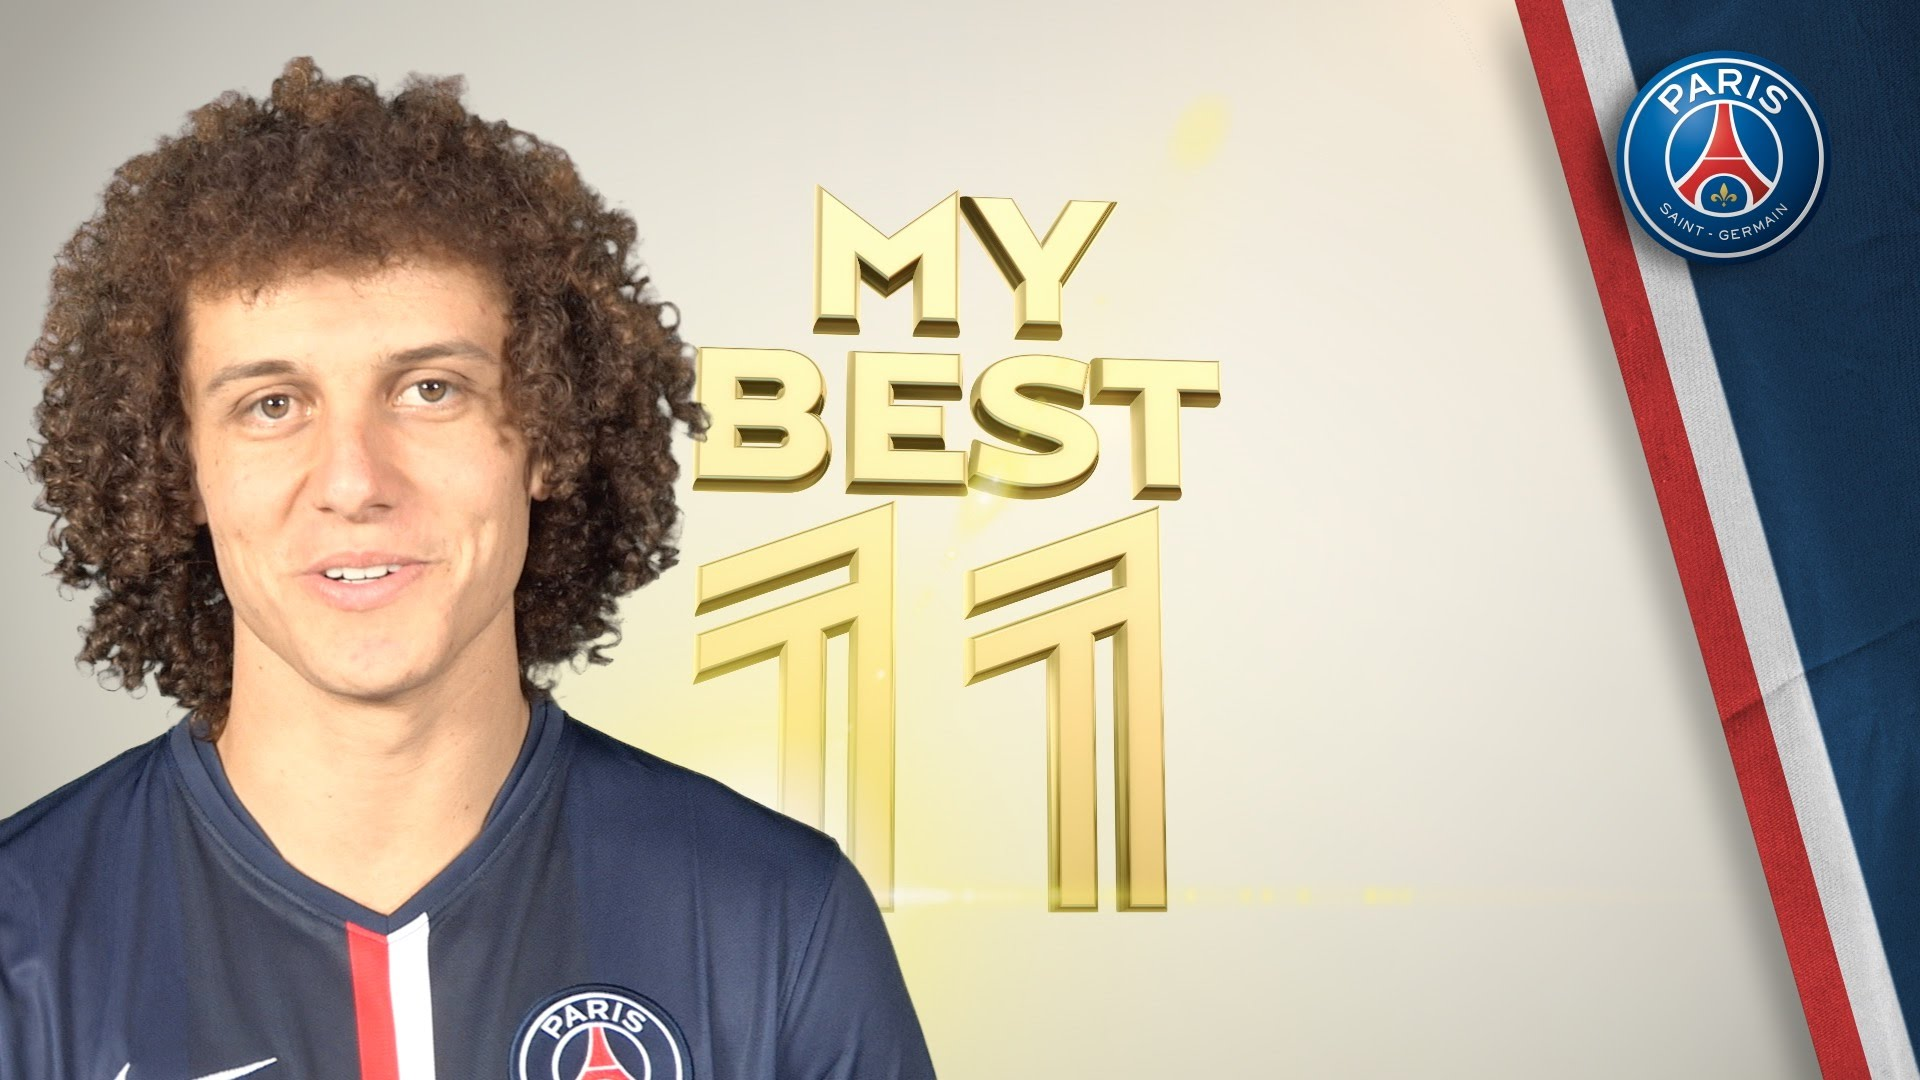 MY DREAM TEAM by David Luiz